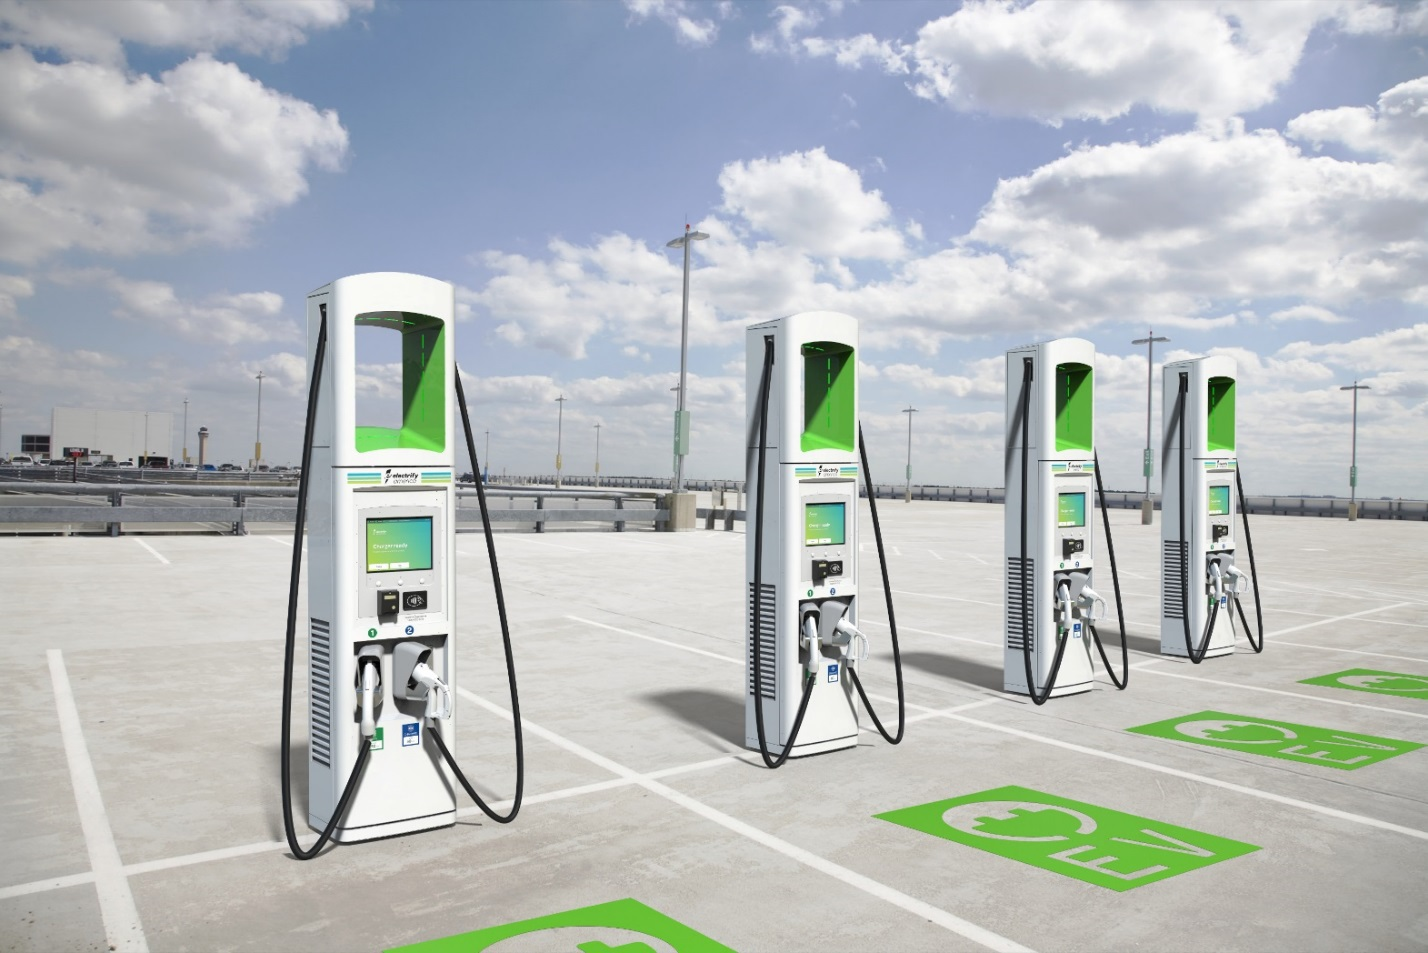 Electrify America Plug-In Hybrid EV Charging Station